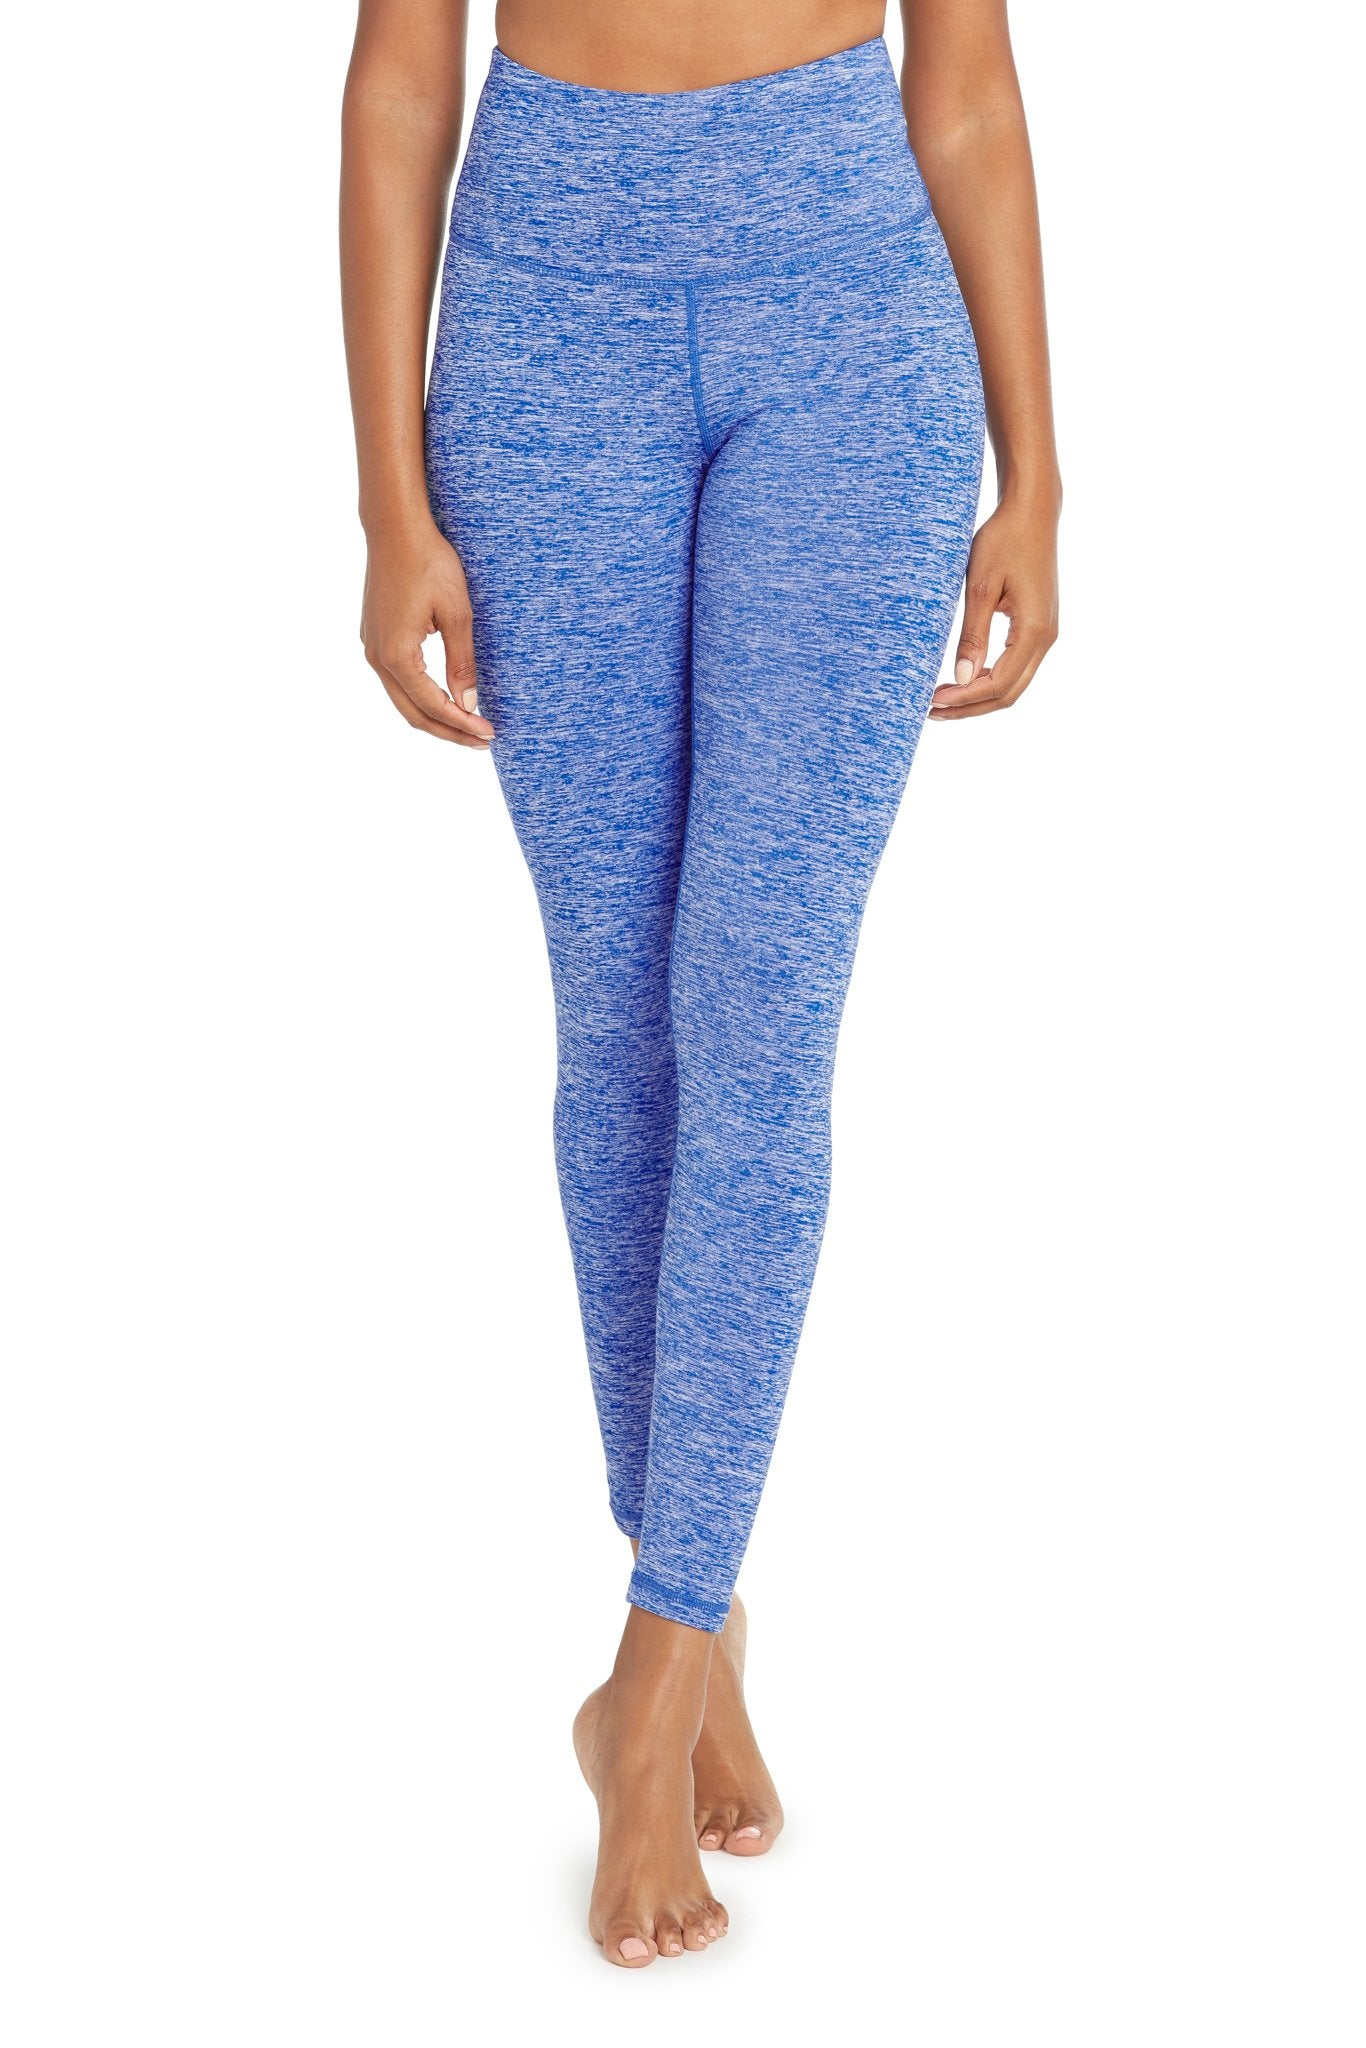 Bella II High-Waist Women's Activewear Leggings